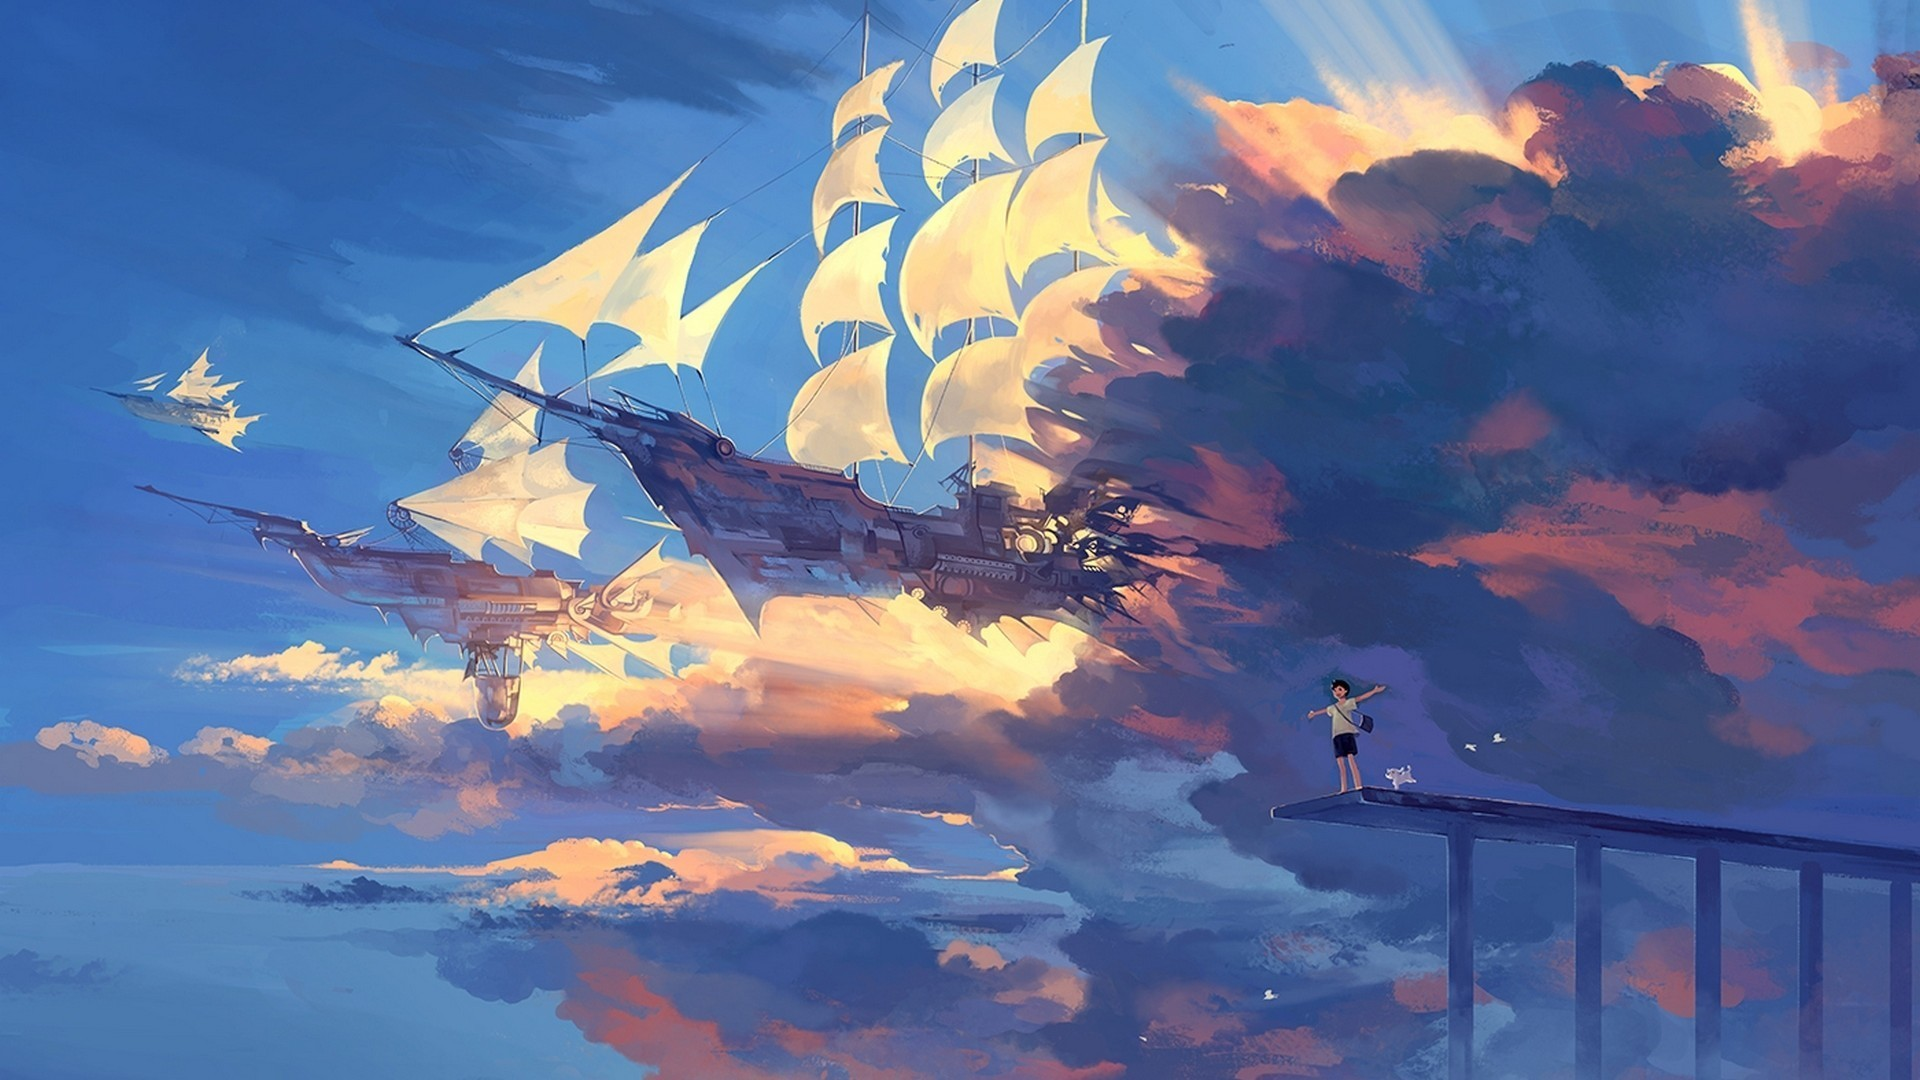 1920x1080 Preview wallpaper hanyijie, sky, scenery, ship, anime, art